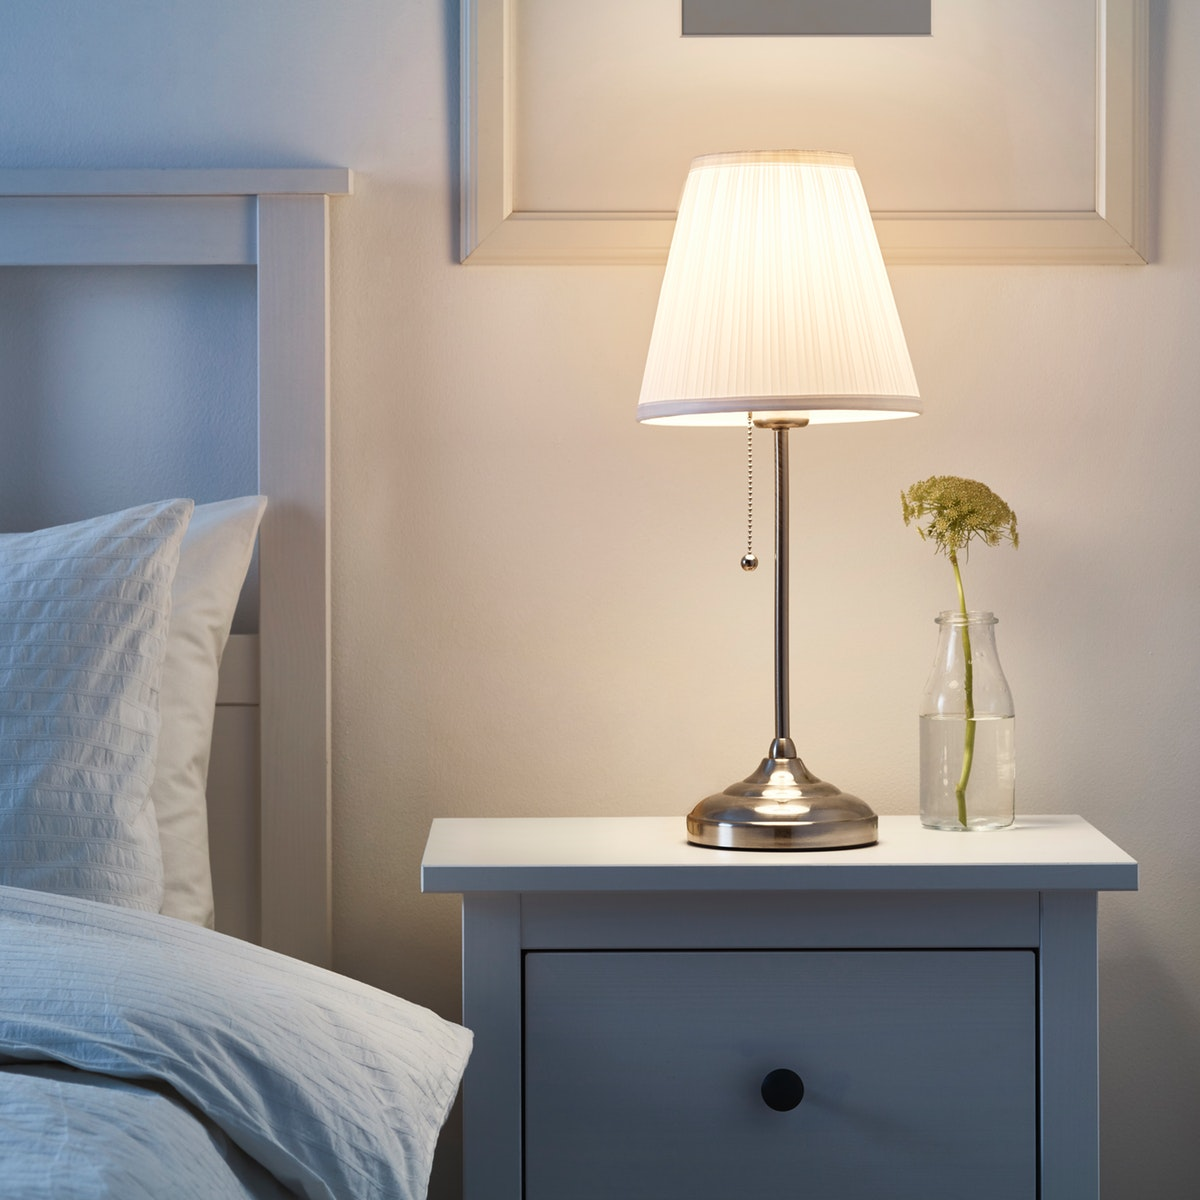 Lighting with the bedroom lamp